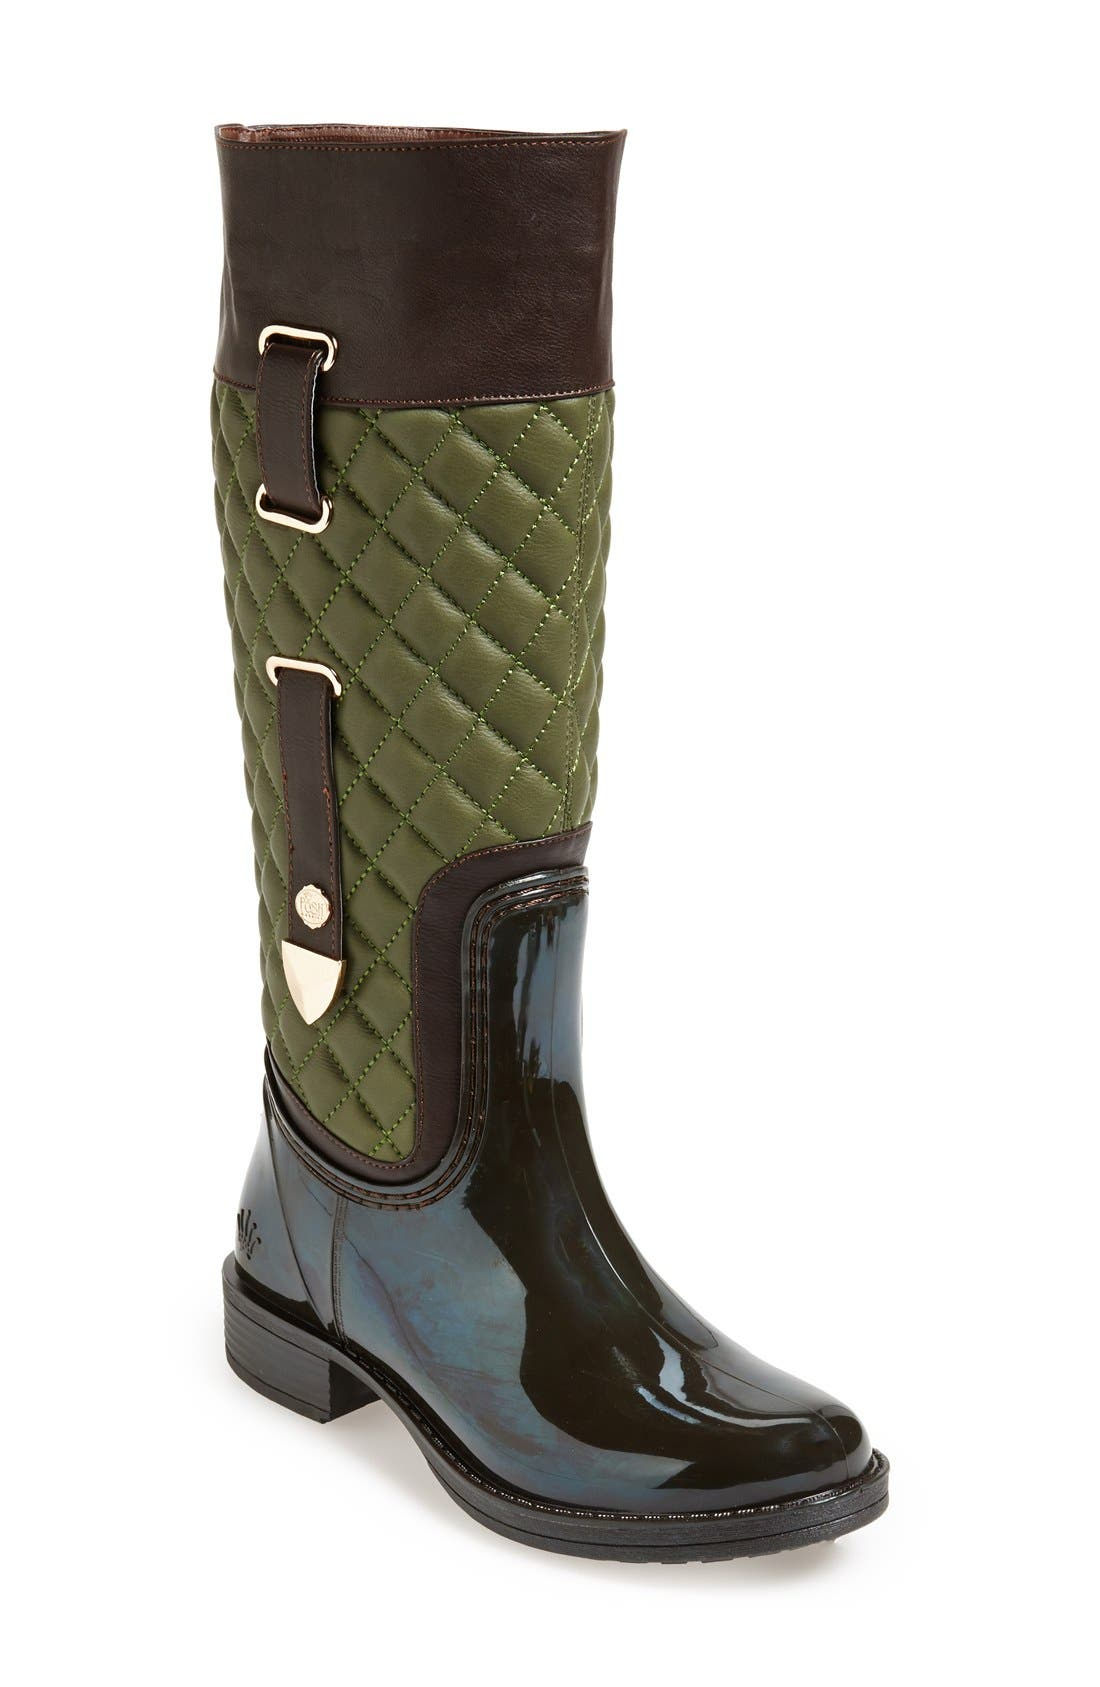 Main Image - Posh Wellies 'Quizz' Quilted Tall Rain Boot (Women)